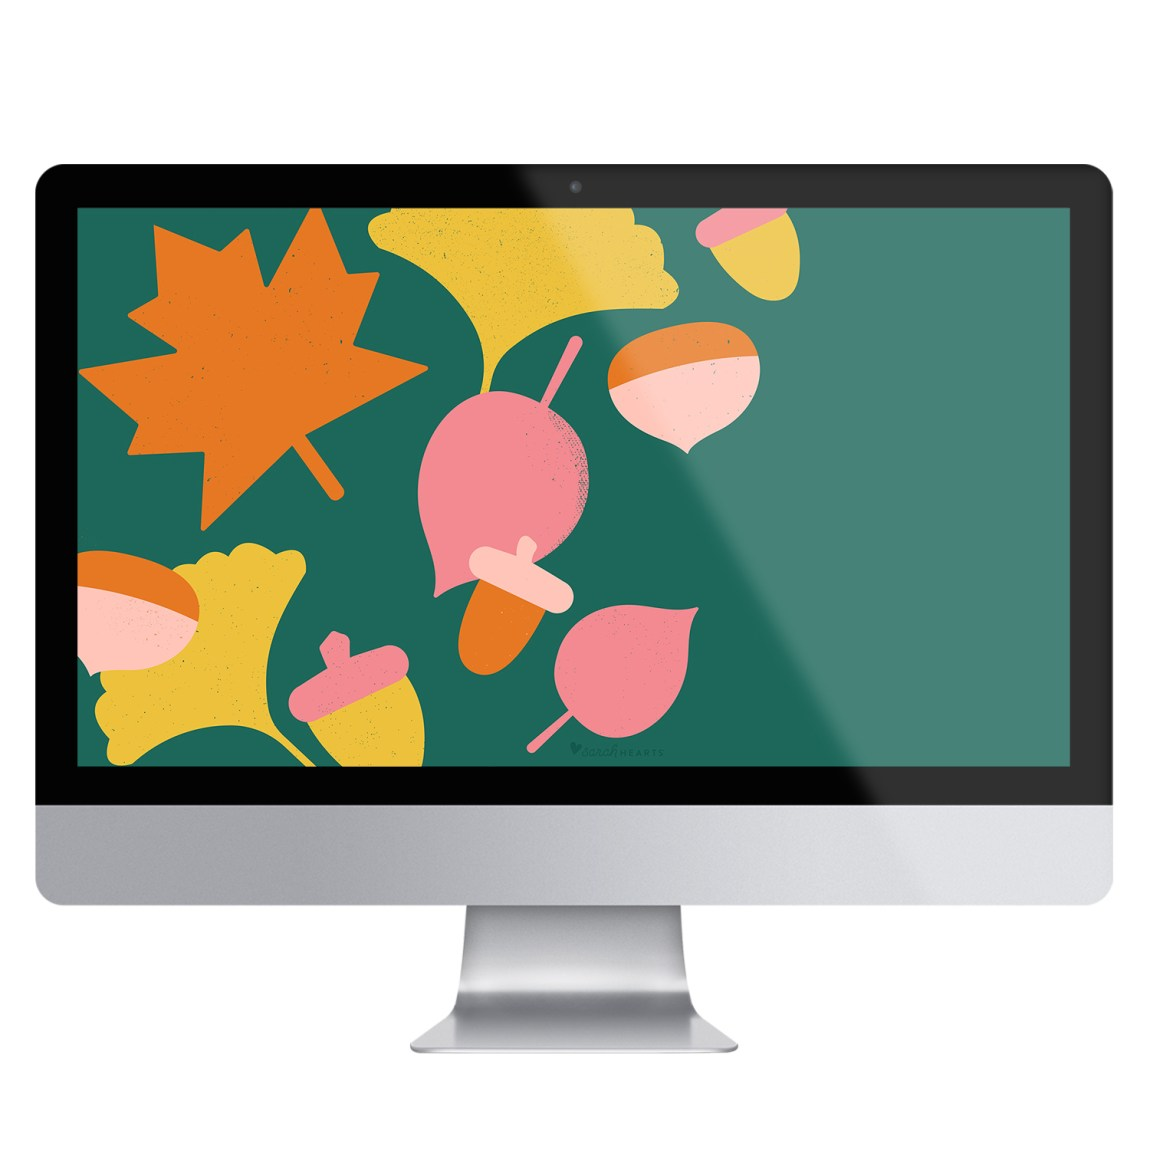 Colorful fall leaf wallpaper graphic as shown on an iMac screen